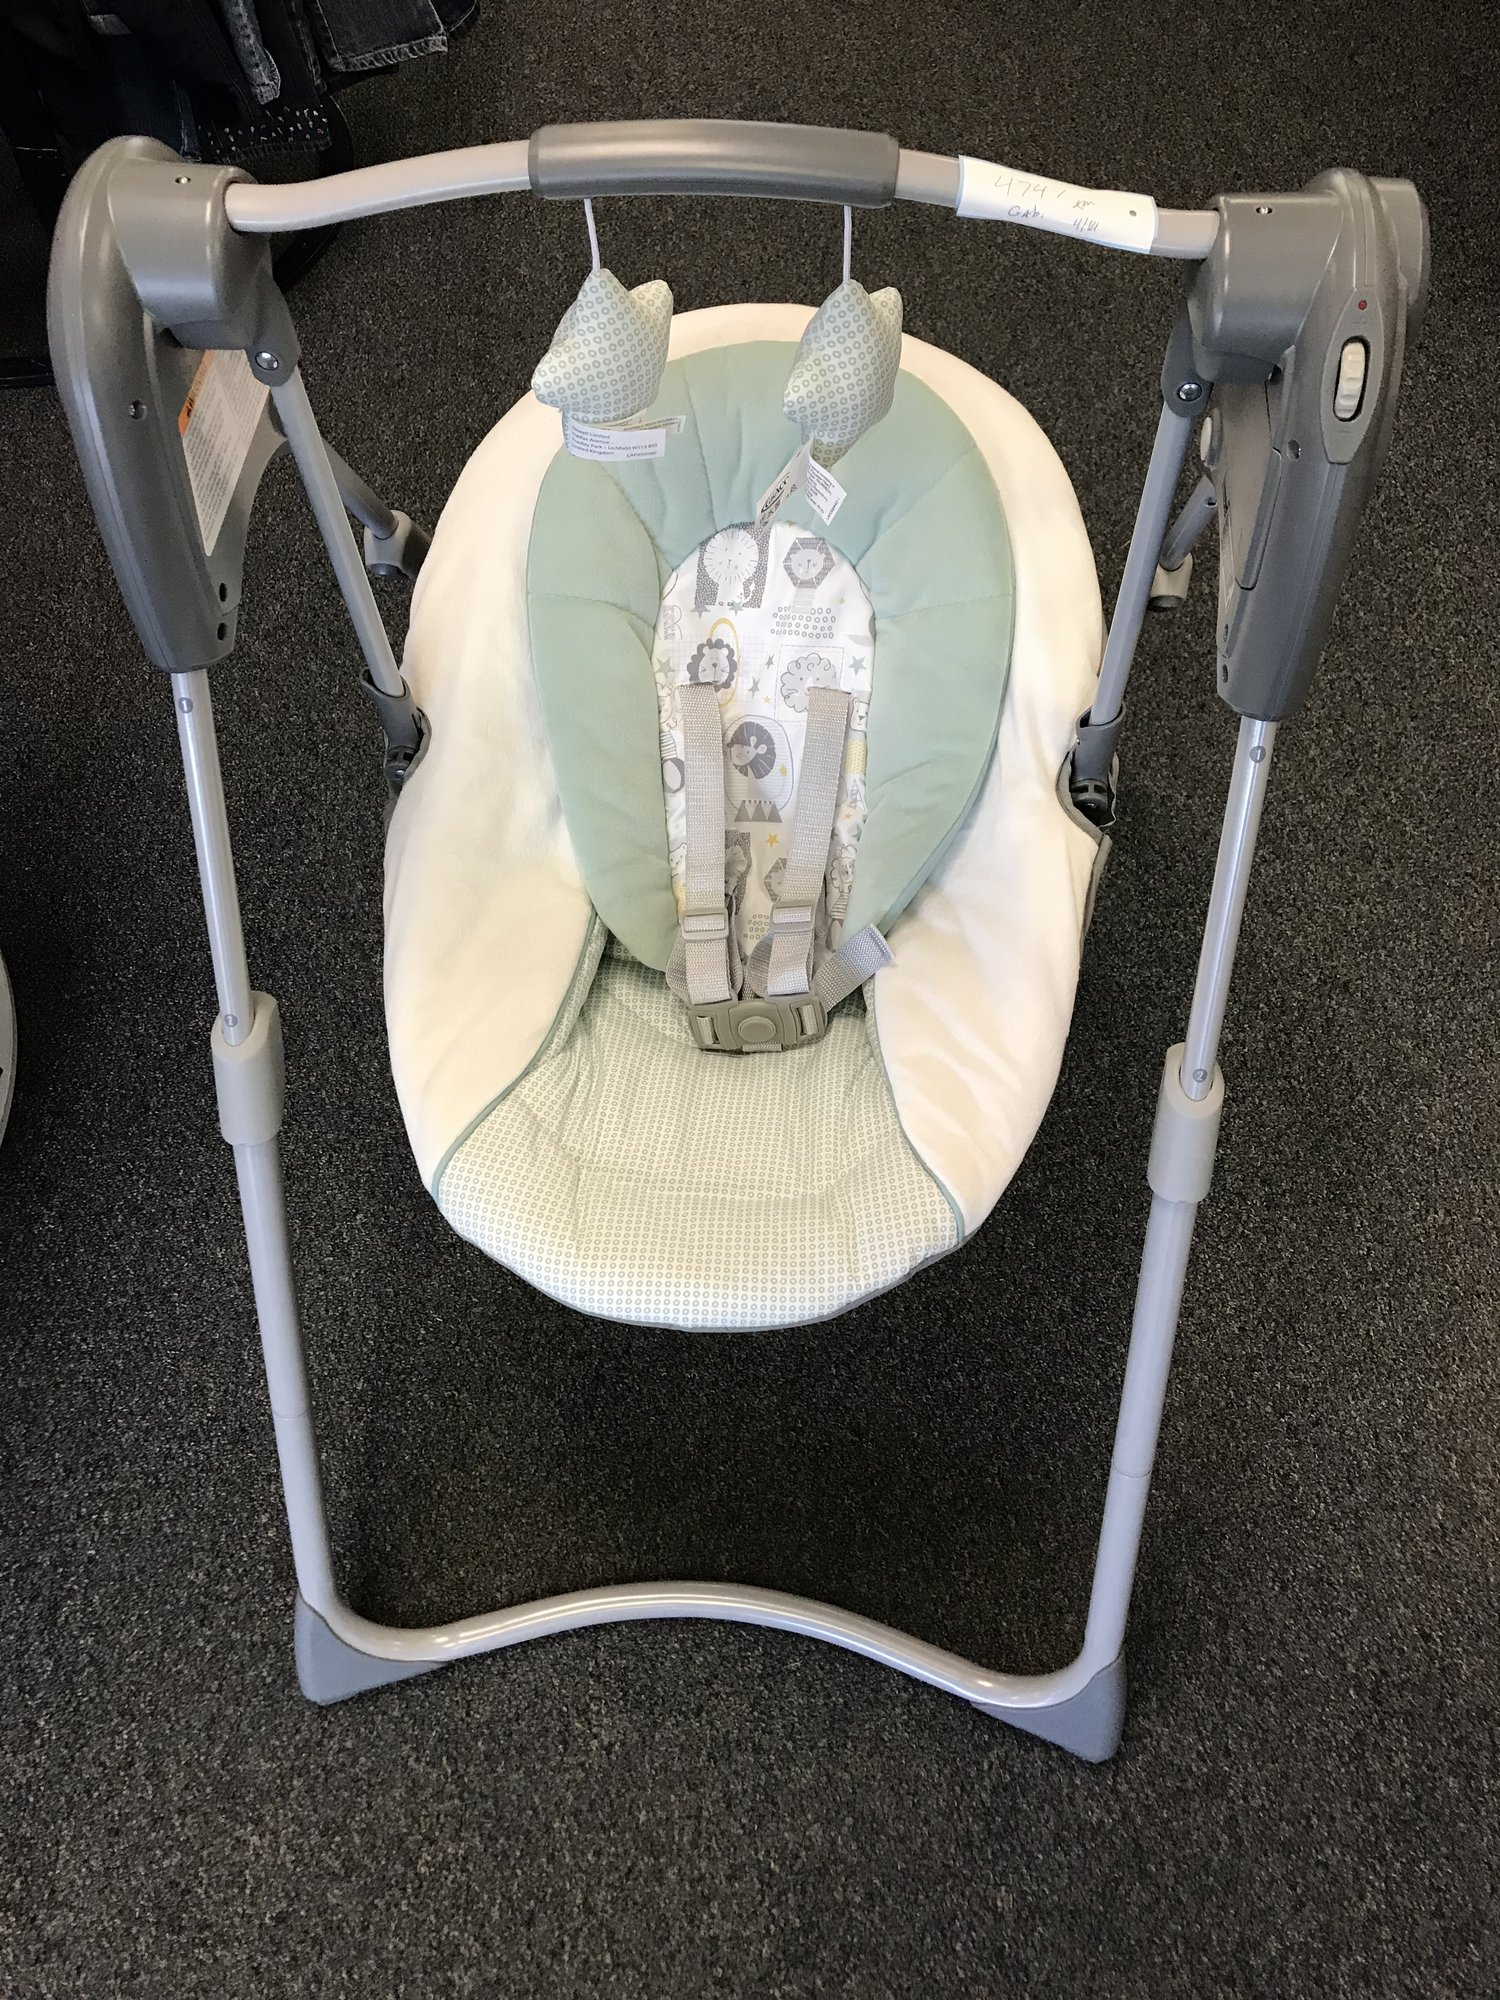 Graco adjustable height Baby Swing w/dangling stars. In EXCELLENT condition and would make a great gift!<br /> NO SHIPPING-in store pick up only